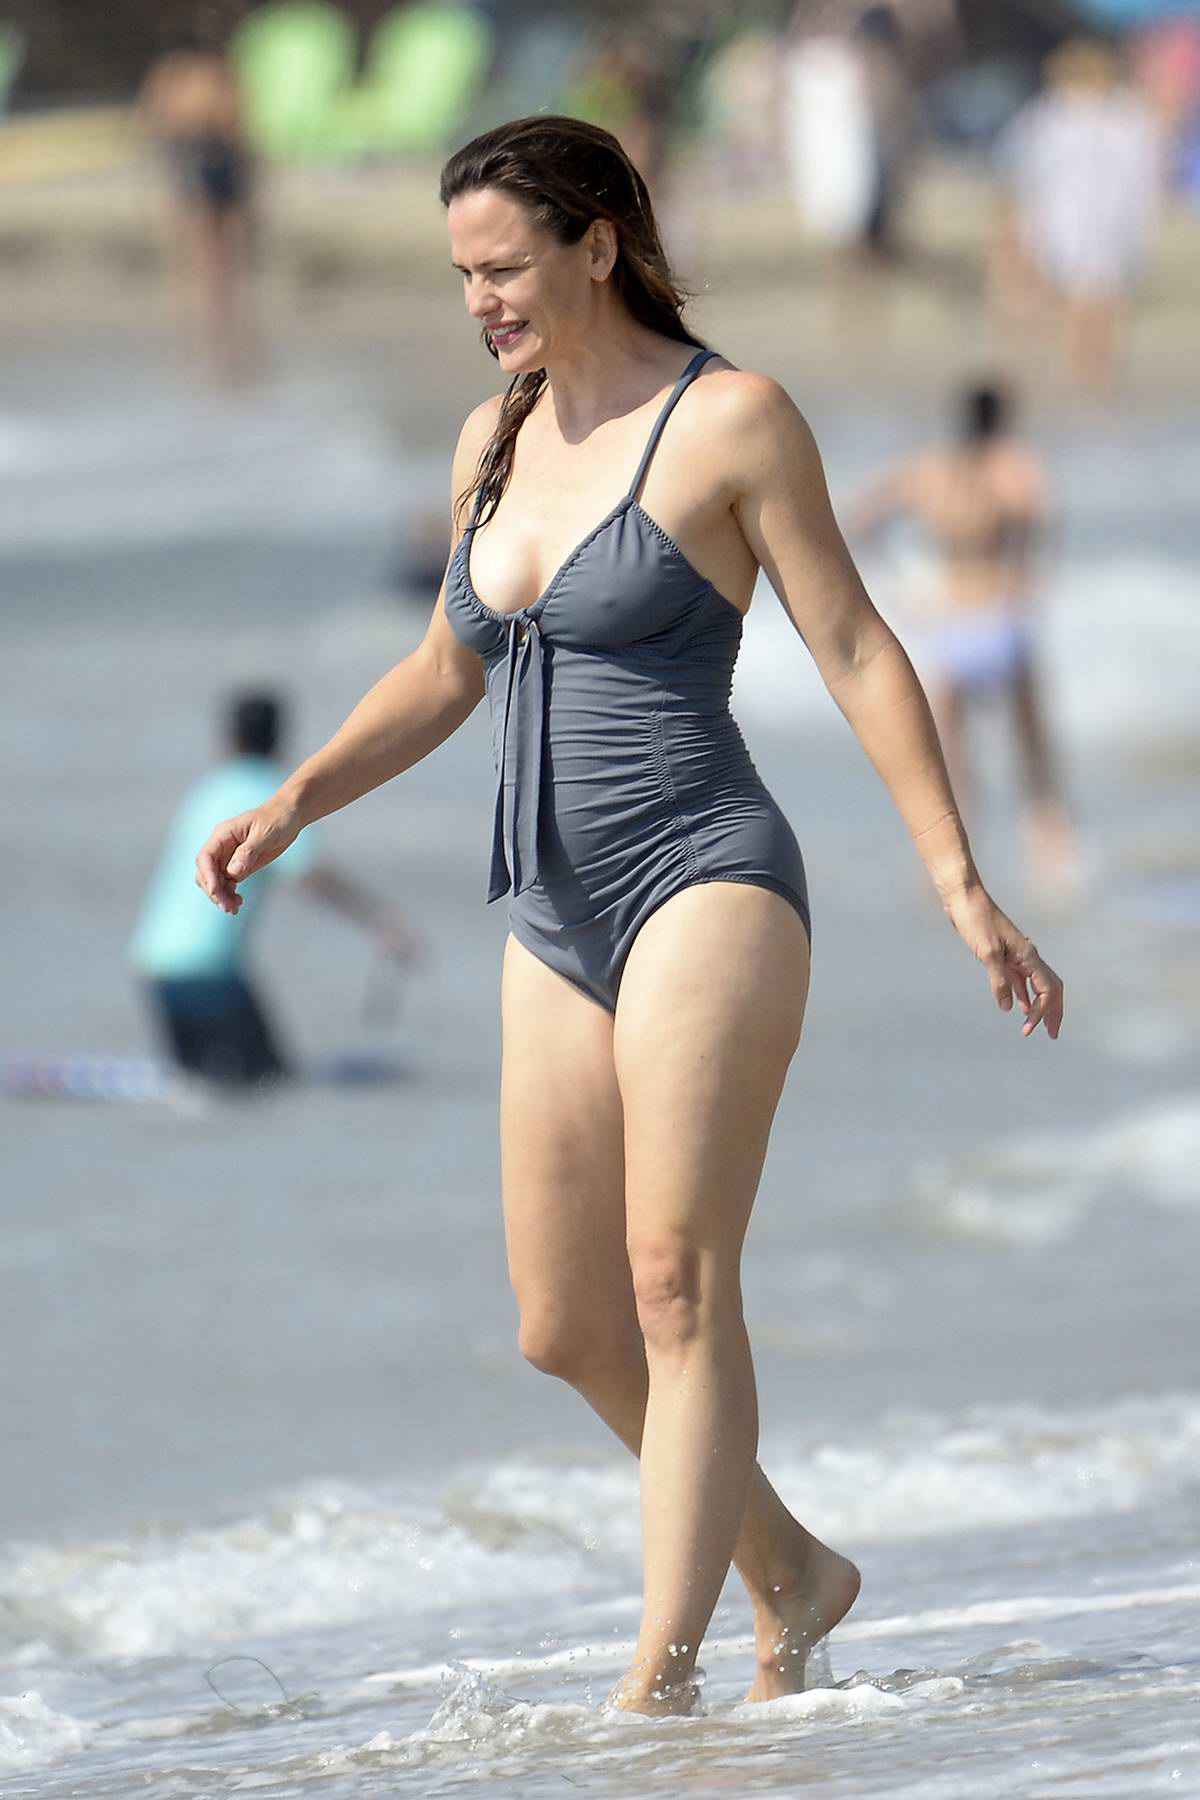 Jennifer Garner looks great in a gray swimsuit while enjoying a day at the beach in Malibu, California